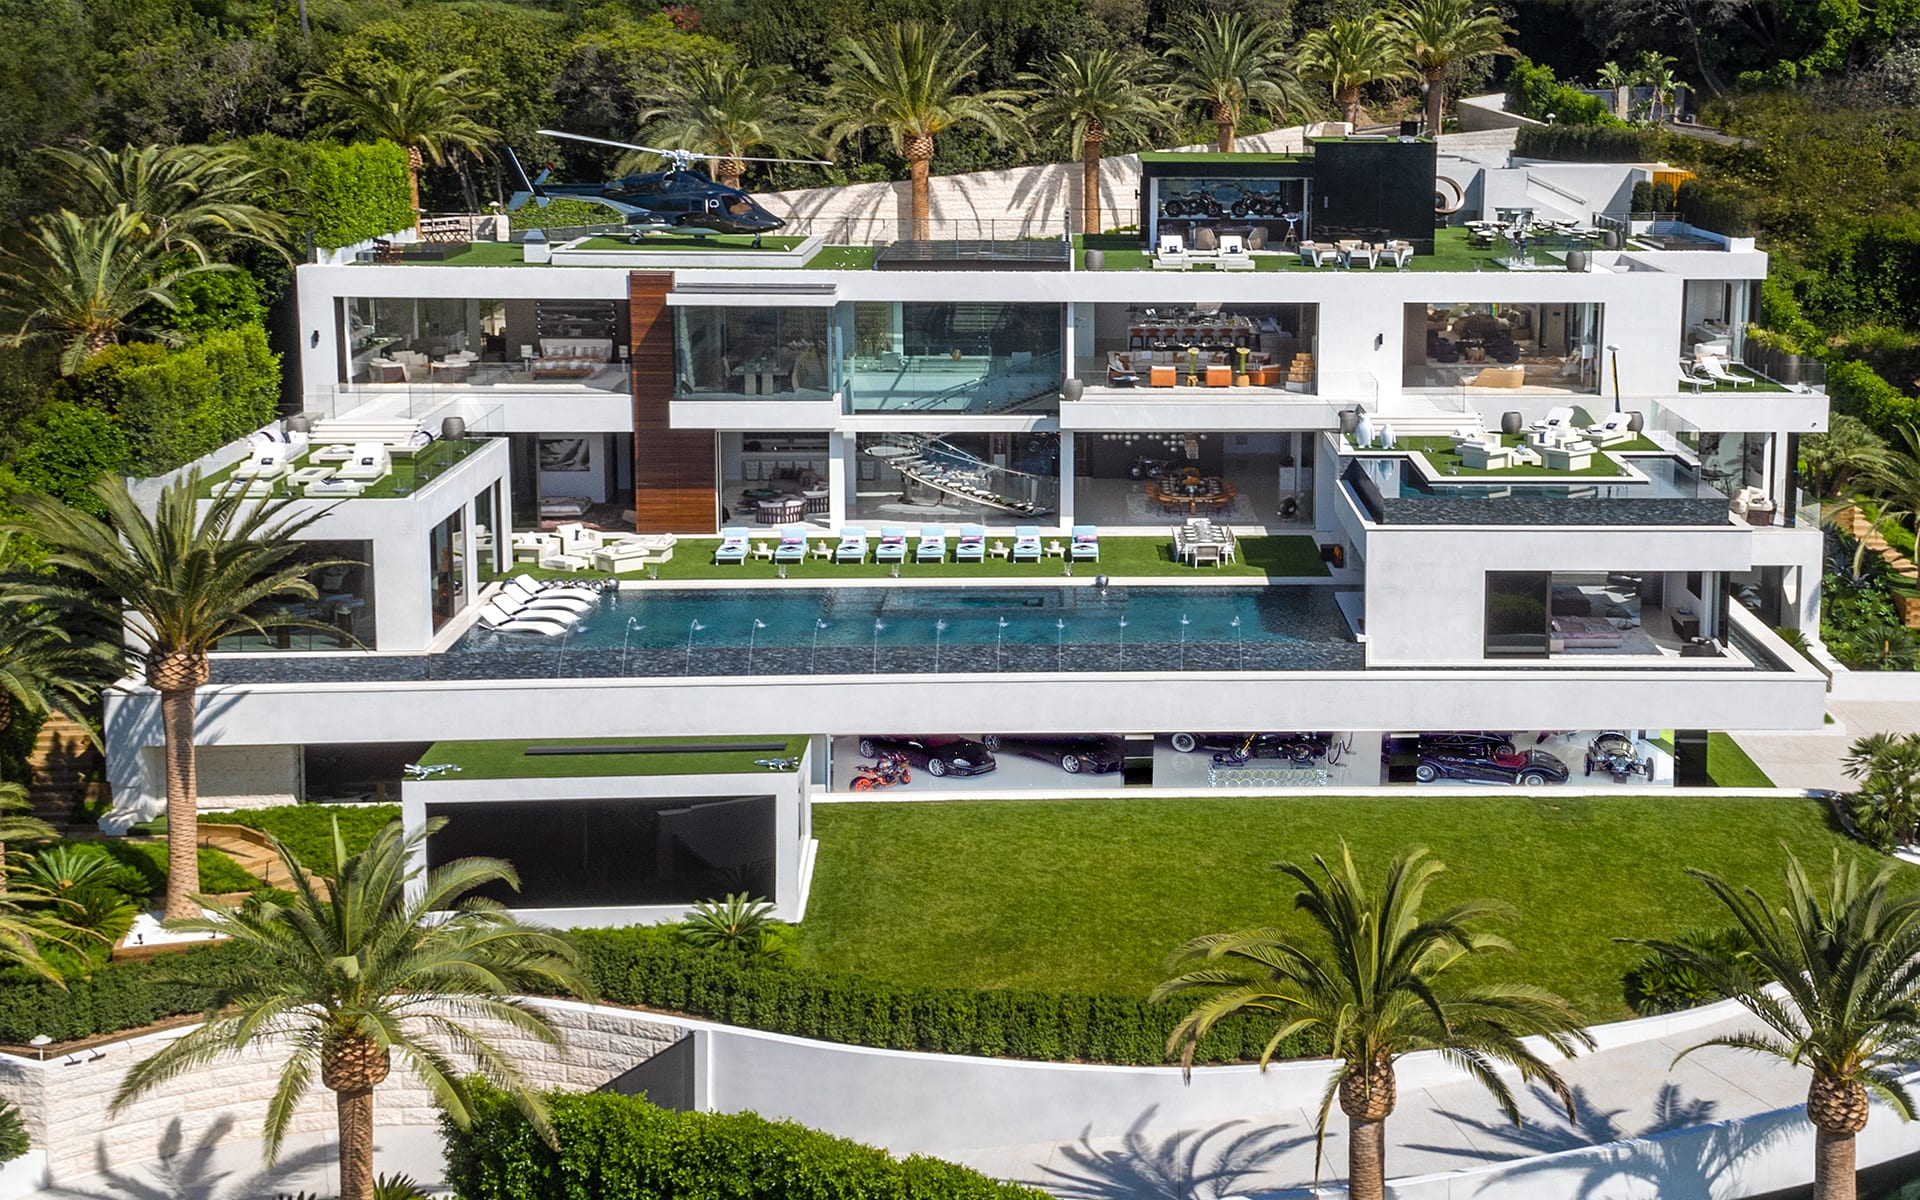 California Real Estate And Homes For Sale Christies International - Luxury-property-in-brentwood-park-beverly-hills